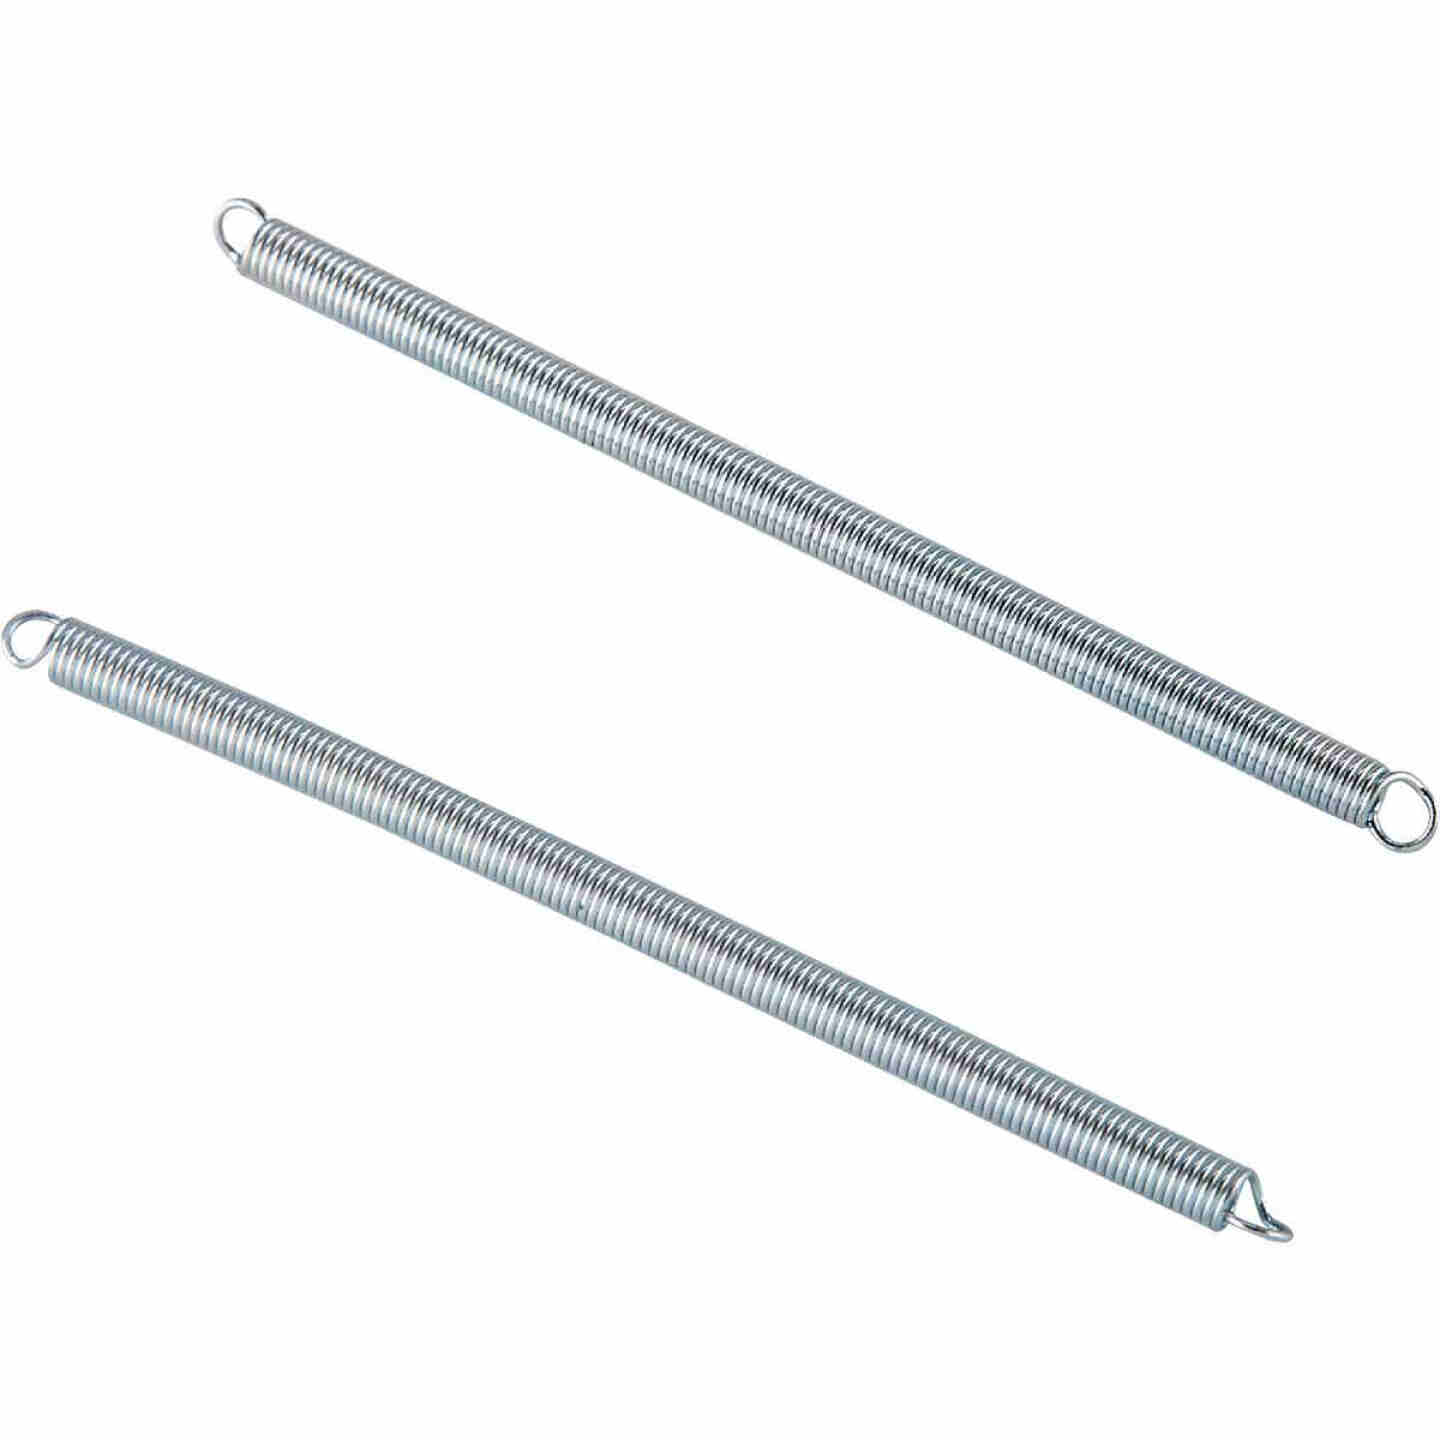 Century Spring 2-7/8 In. x 9/16 In. Extension Spring (2 Count) Image 1